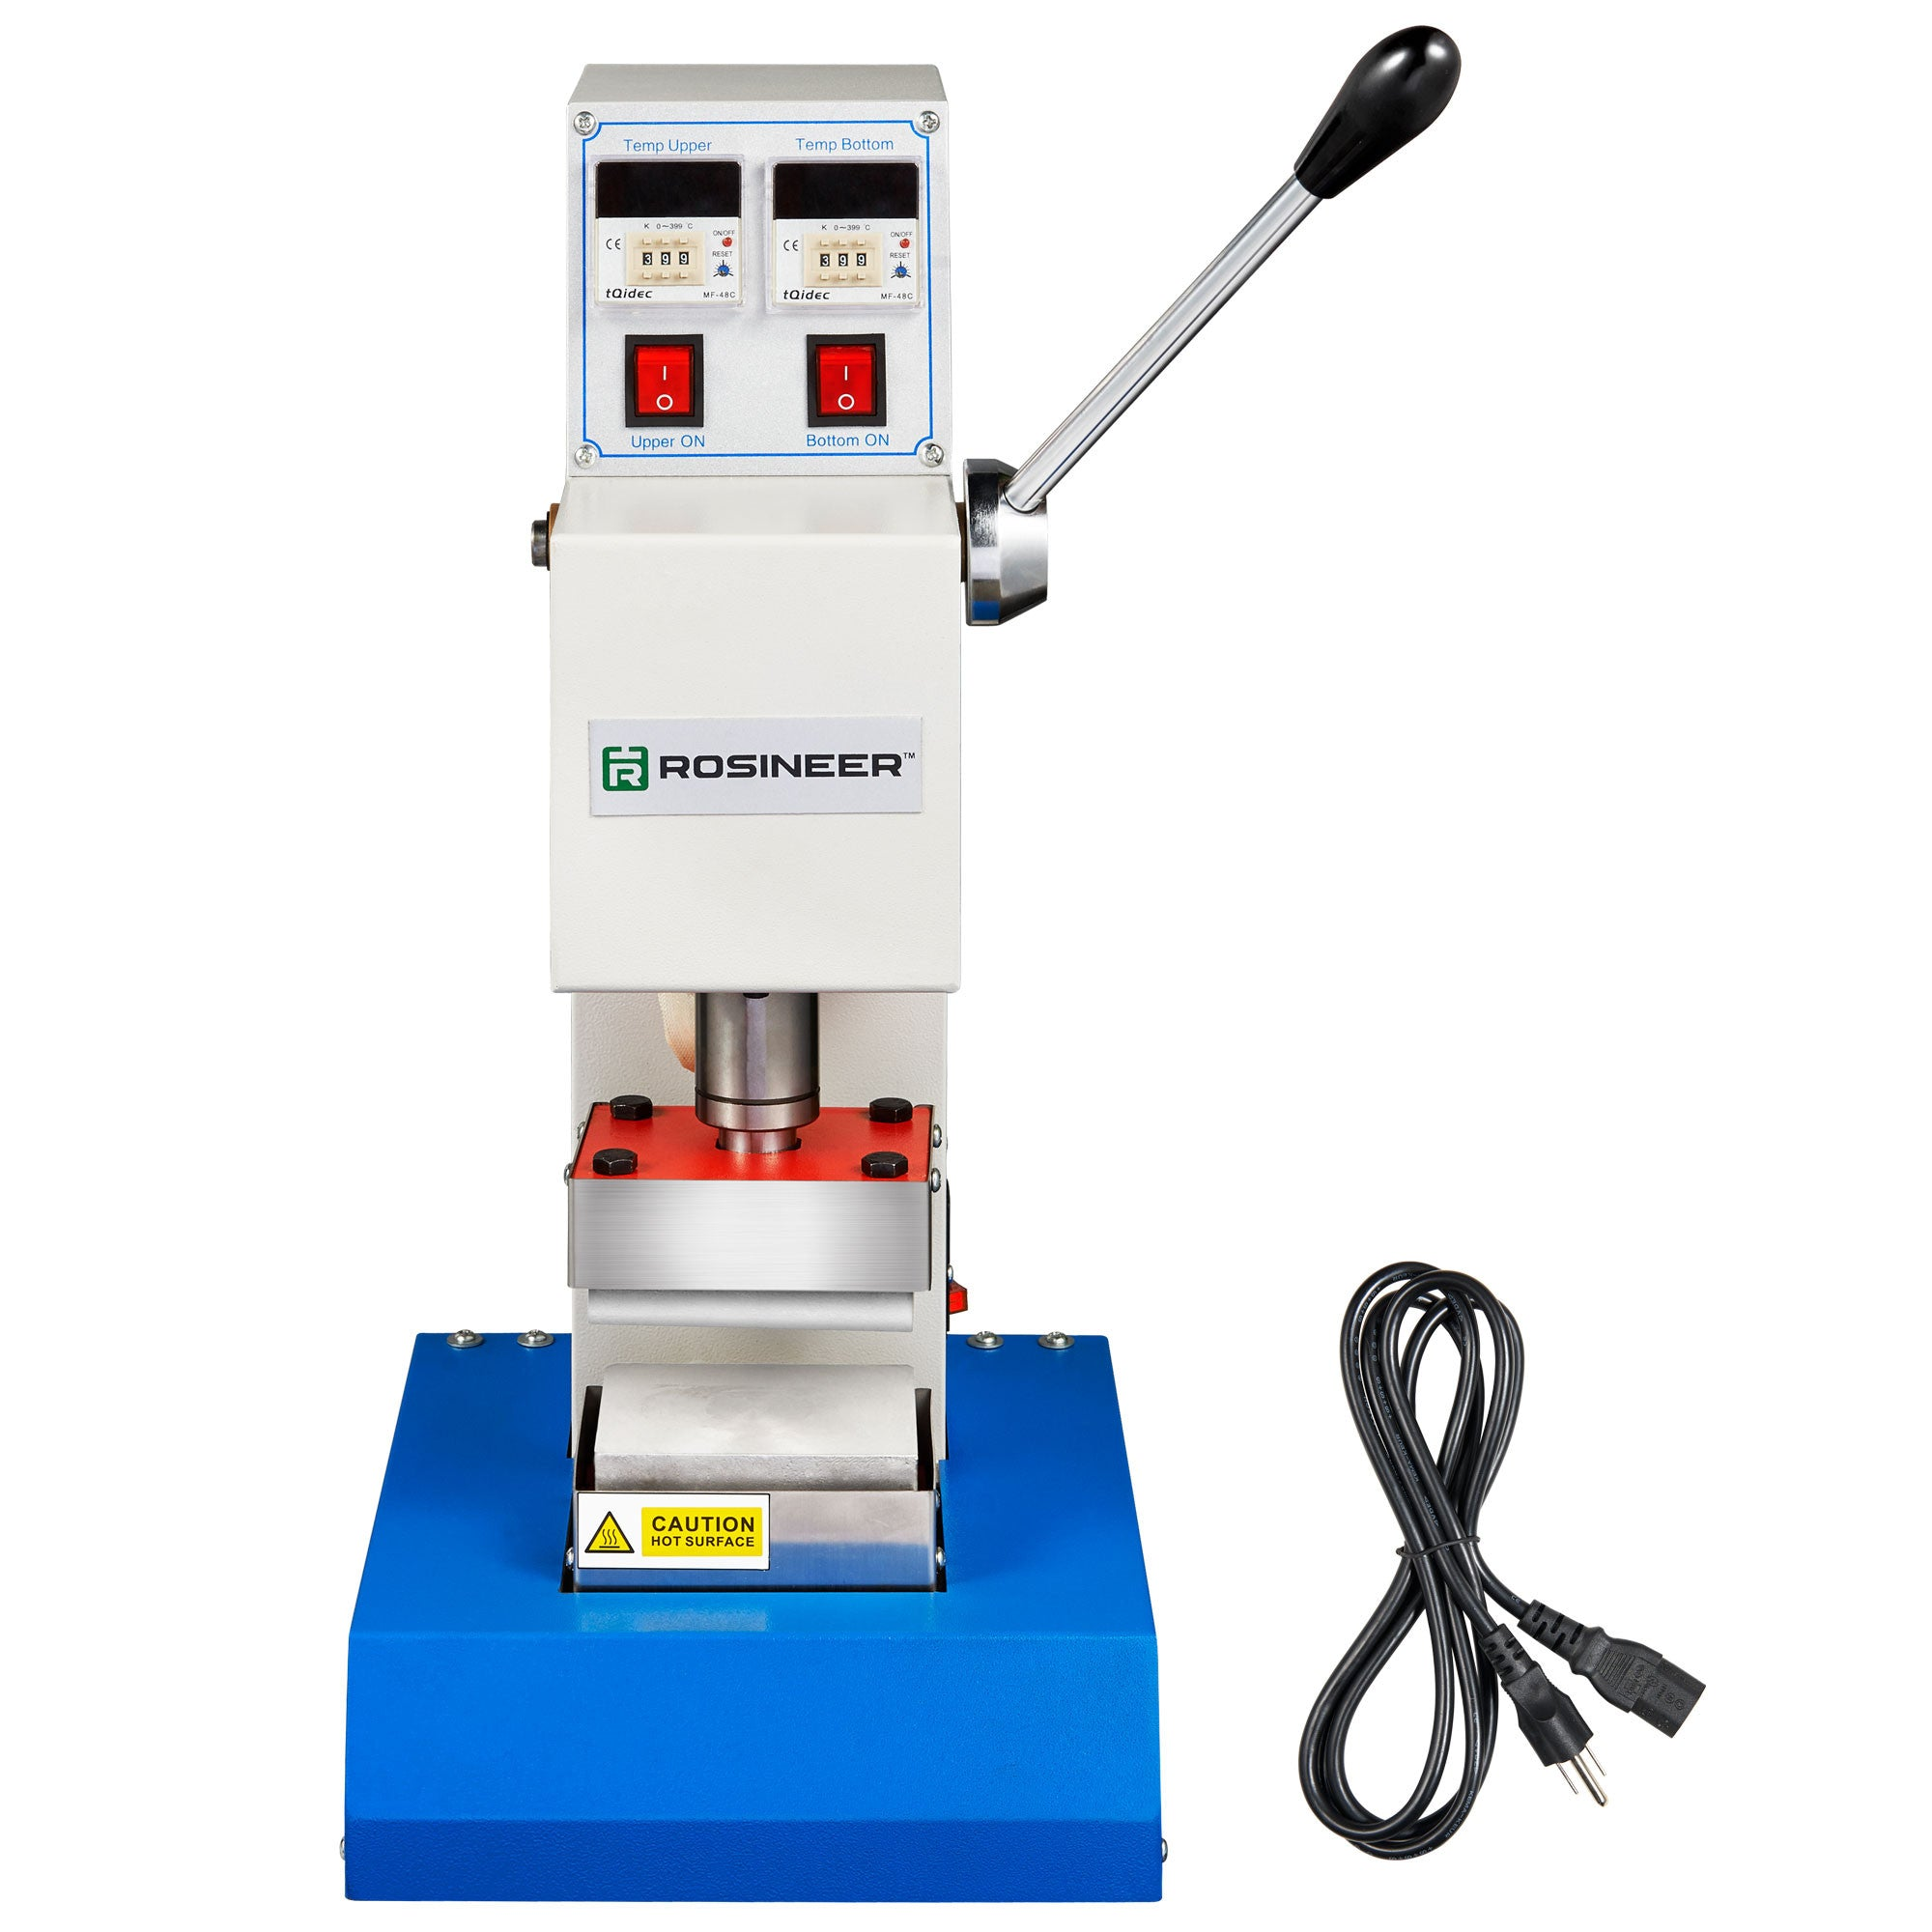 Rosineer RNR-MV1 Manual Rosin Press with Adapter